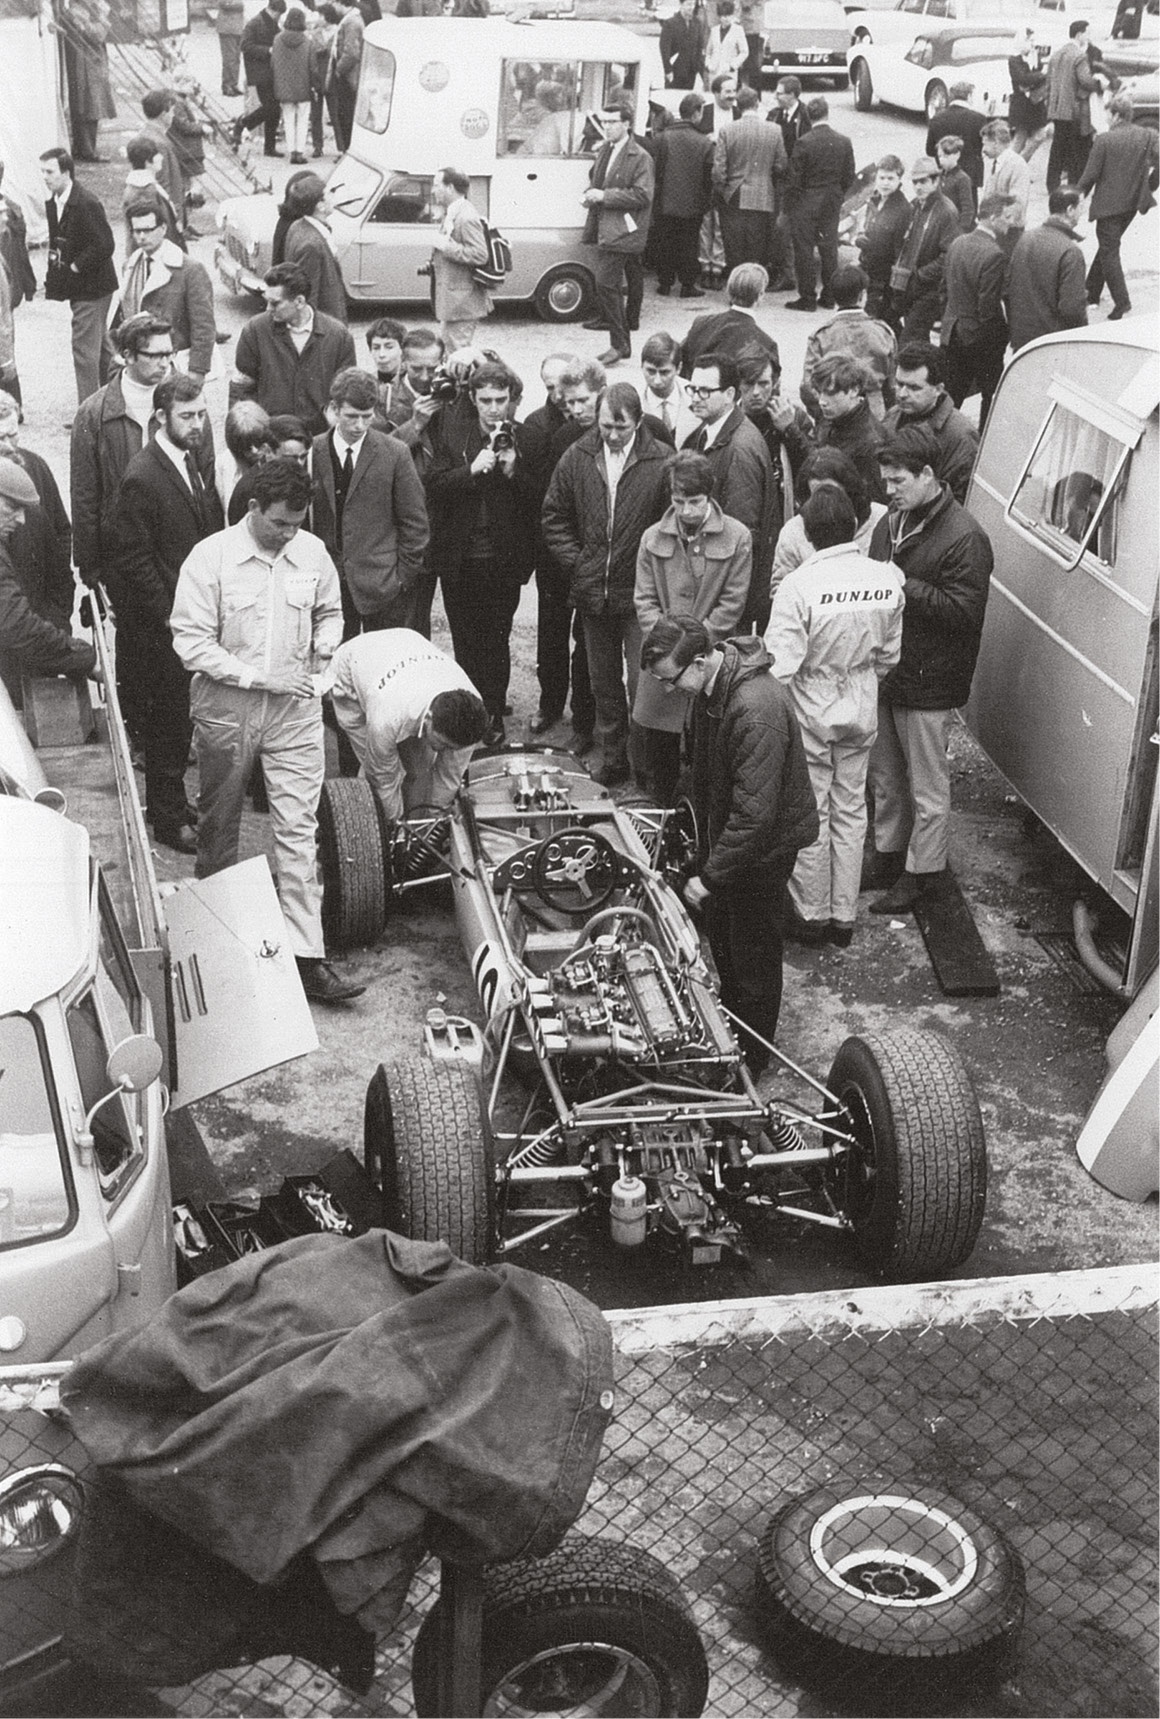 Privateer Bob Anderson's crew tweak his Brabham BT11 beside the VW flat-bed he used as his transporter.